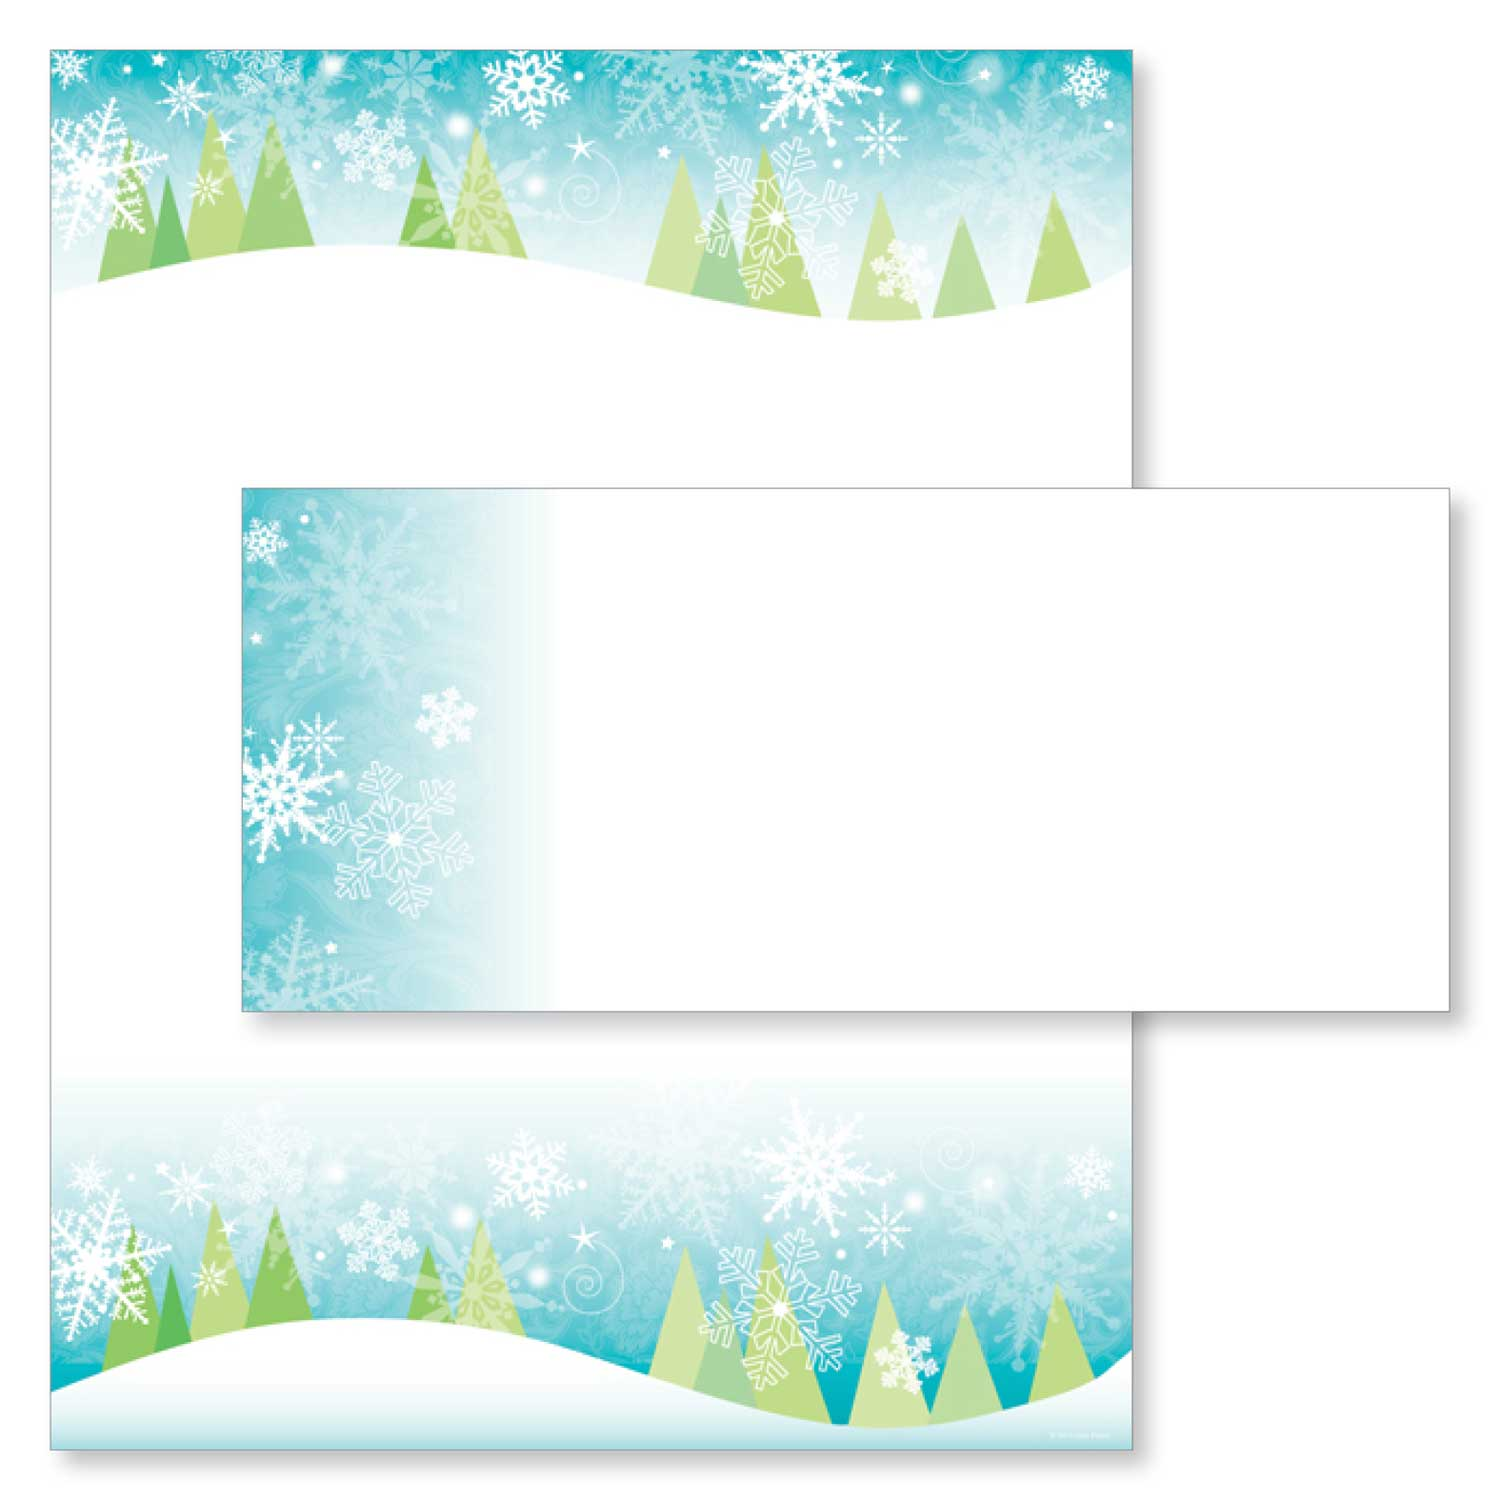 Snowy Trees Christmas Border Holiday Printer Paper Holiday